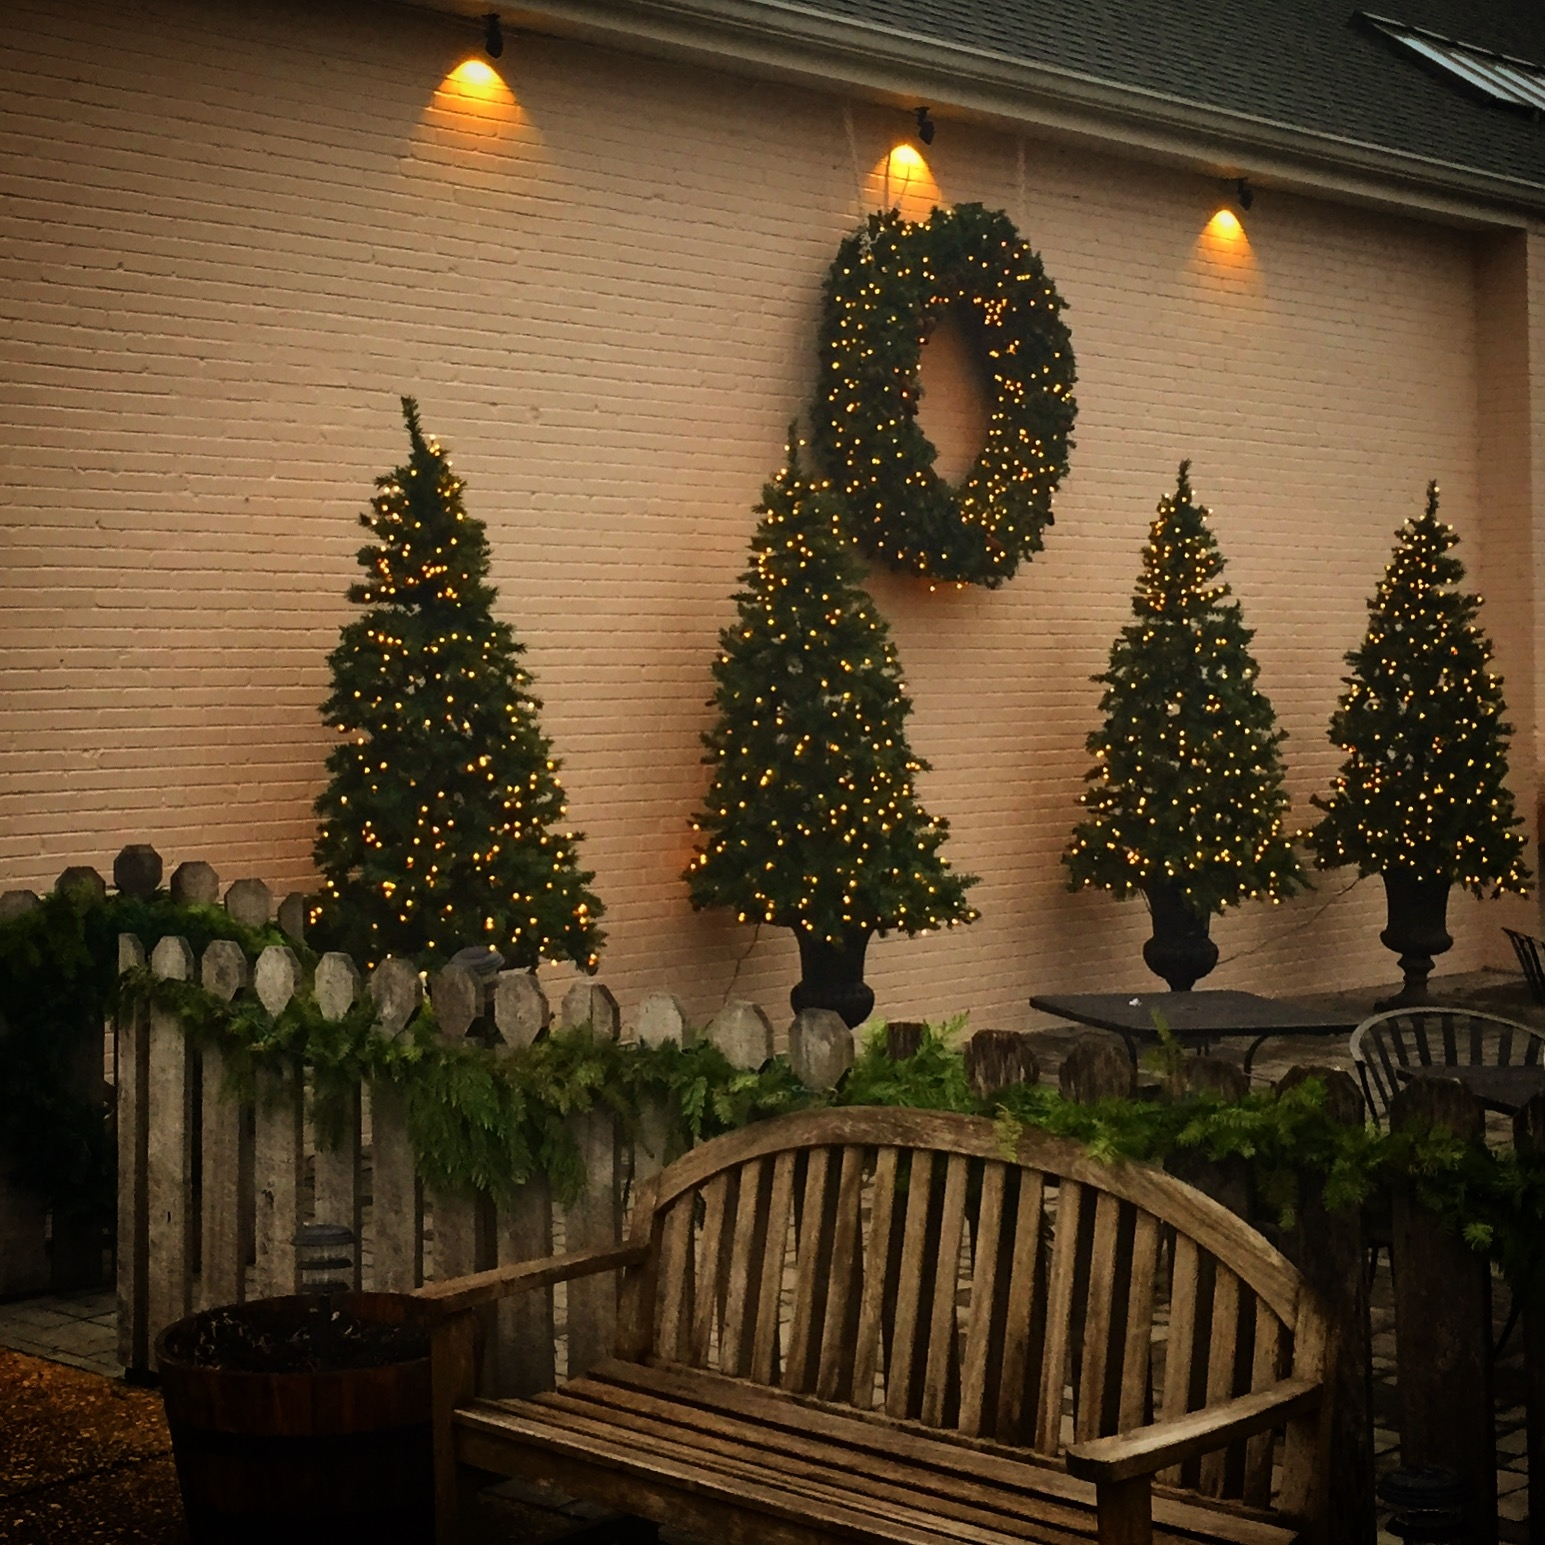 Tula's festive patio in December